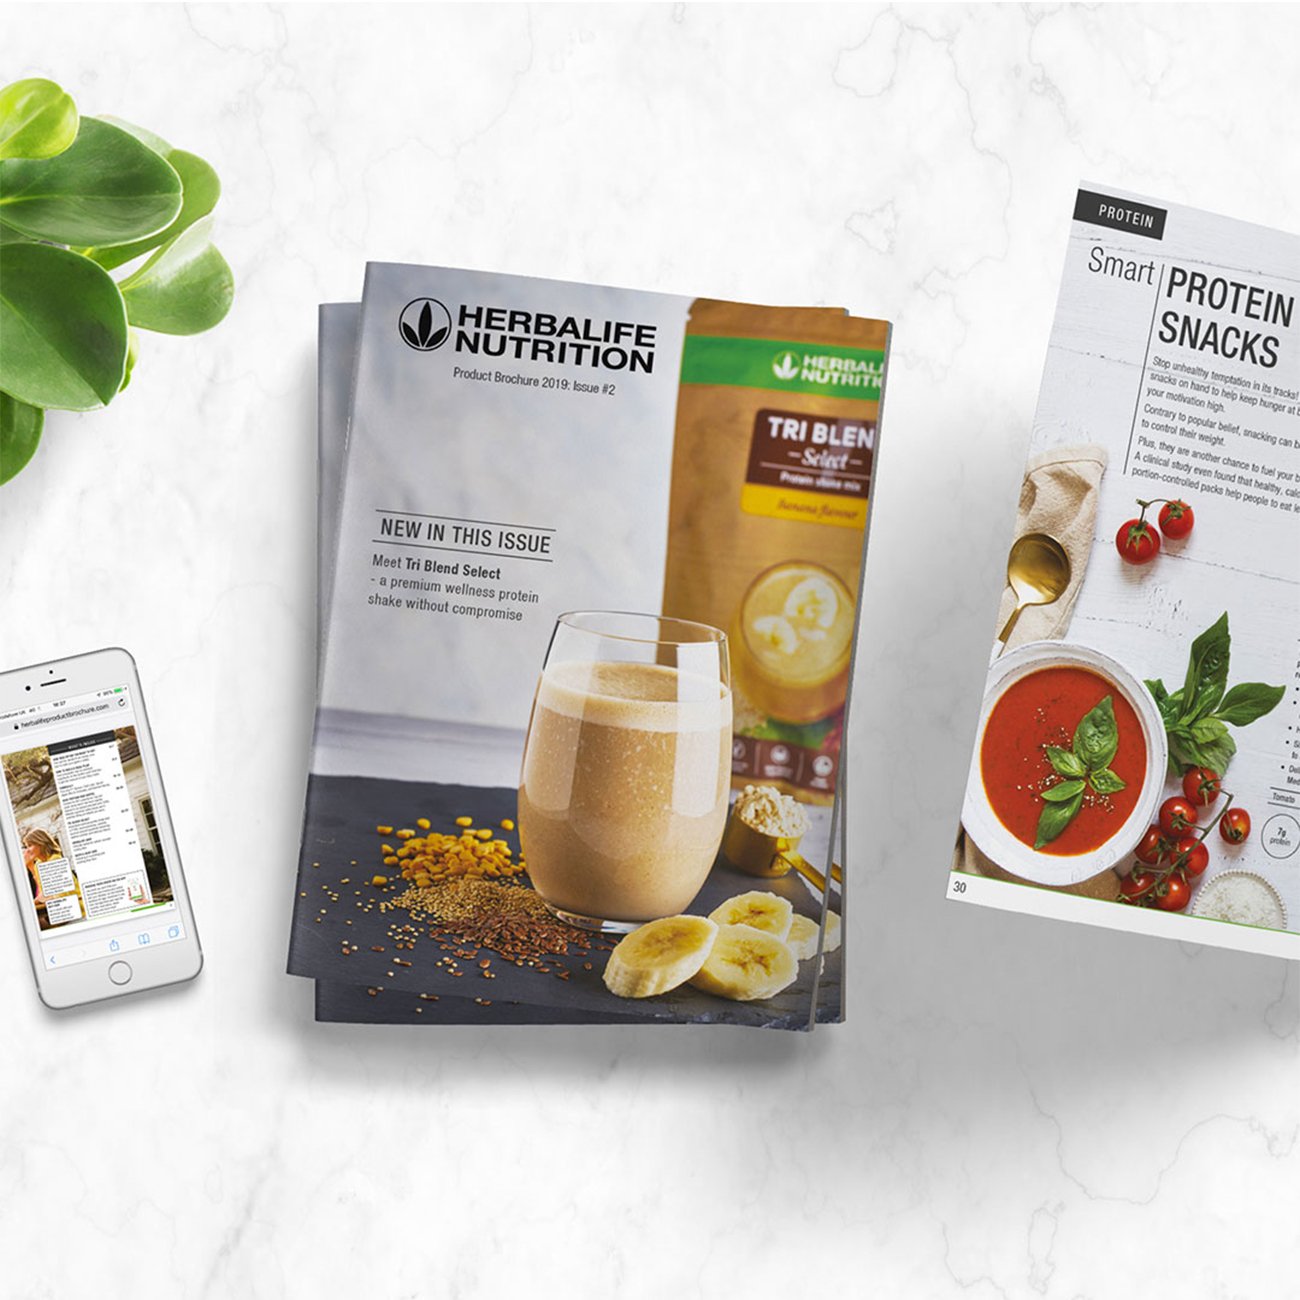 herbalife nutrition product brochure cover and protein snack recipe page on white table